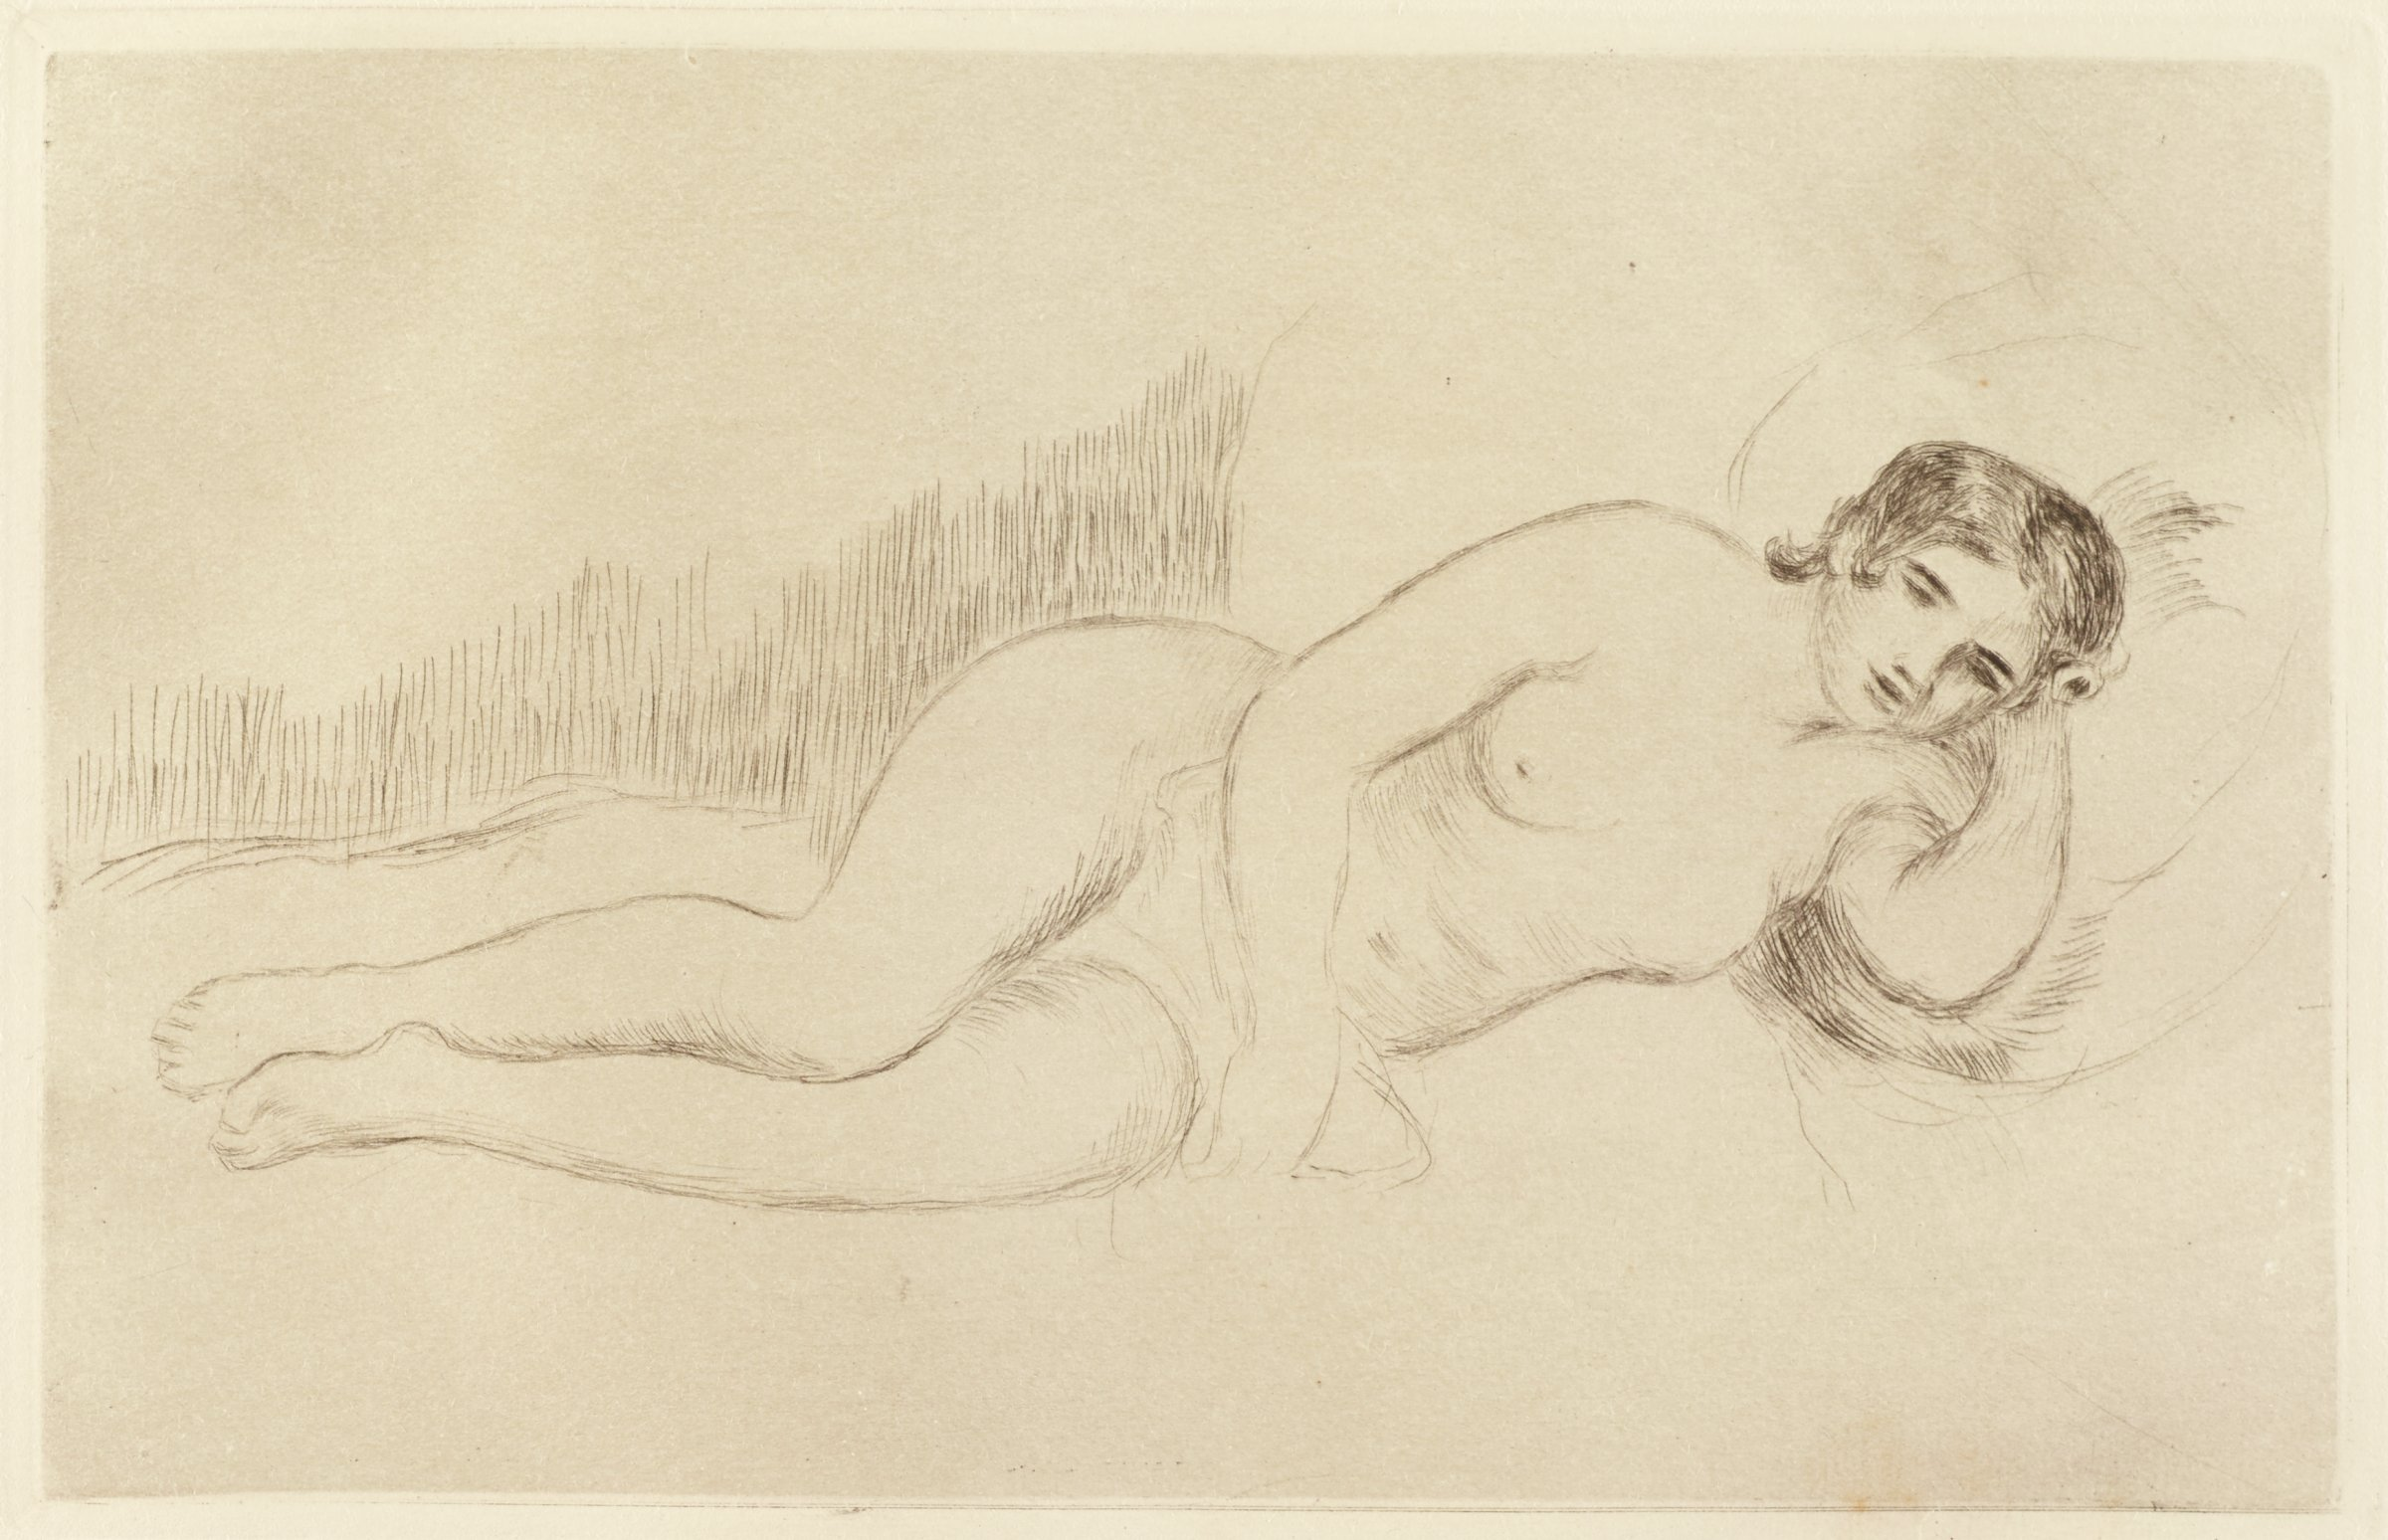 Sketch-like etching of a nude woman reclining with her head resting on her left arm.